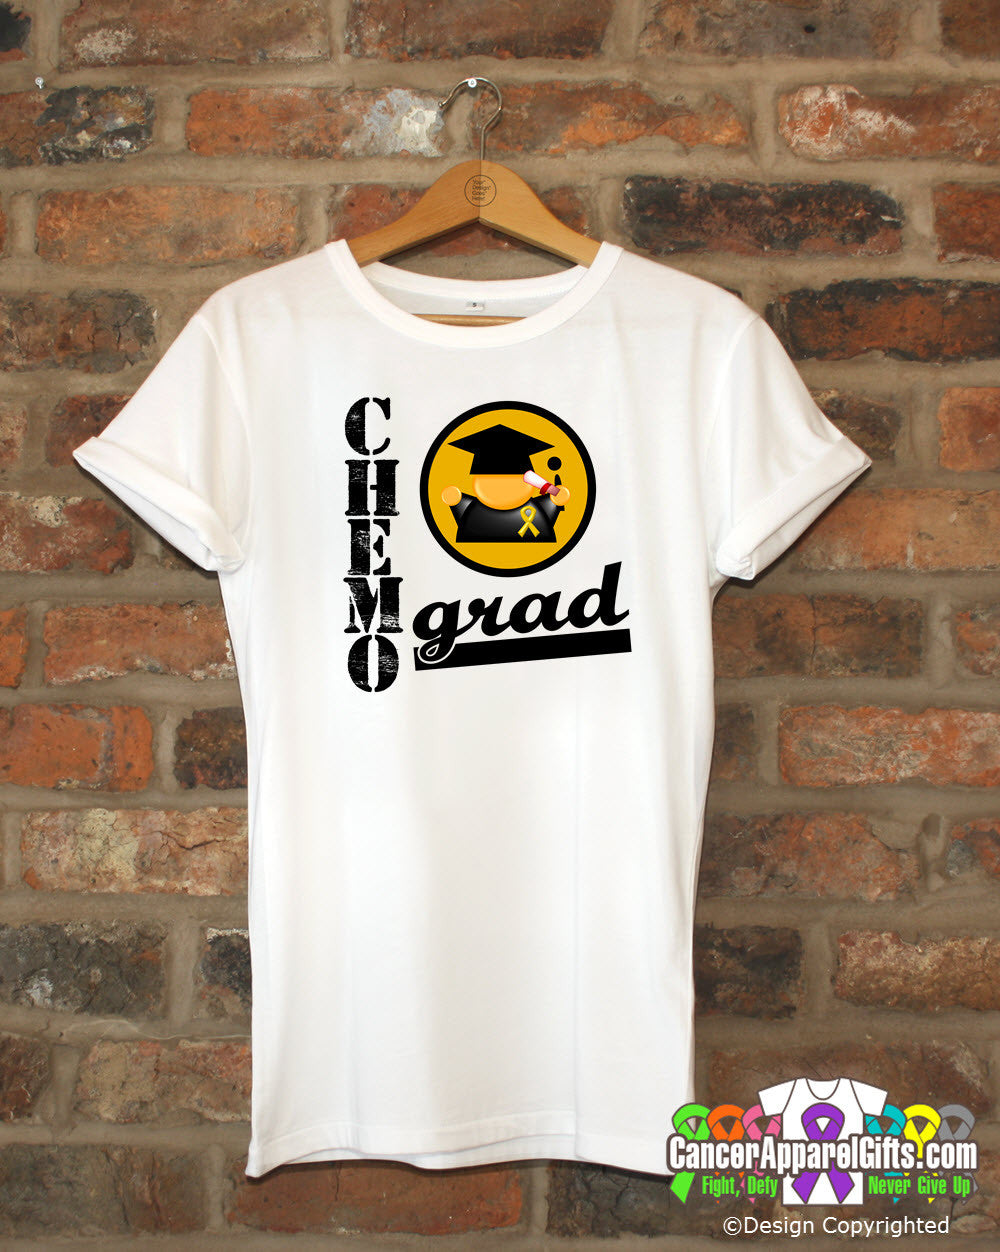 Appendix Cancer Chemo Grad Shirts